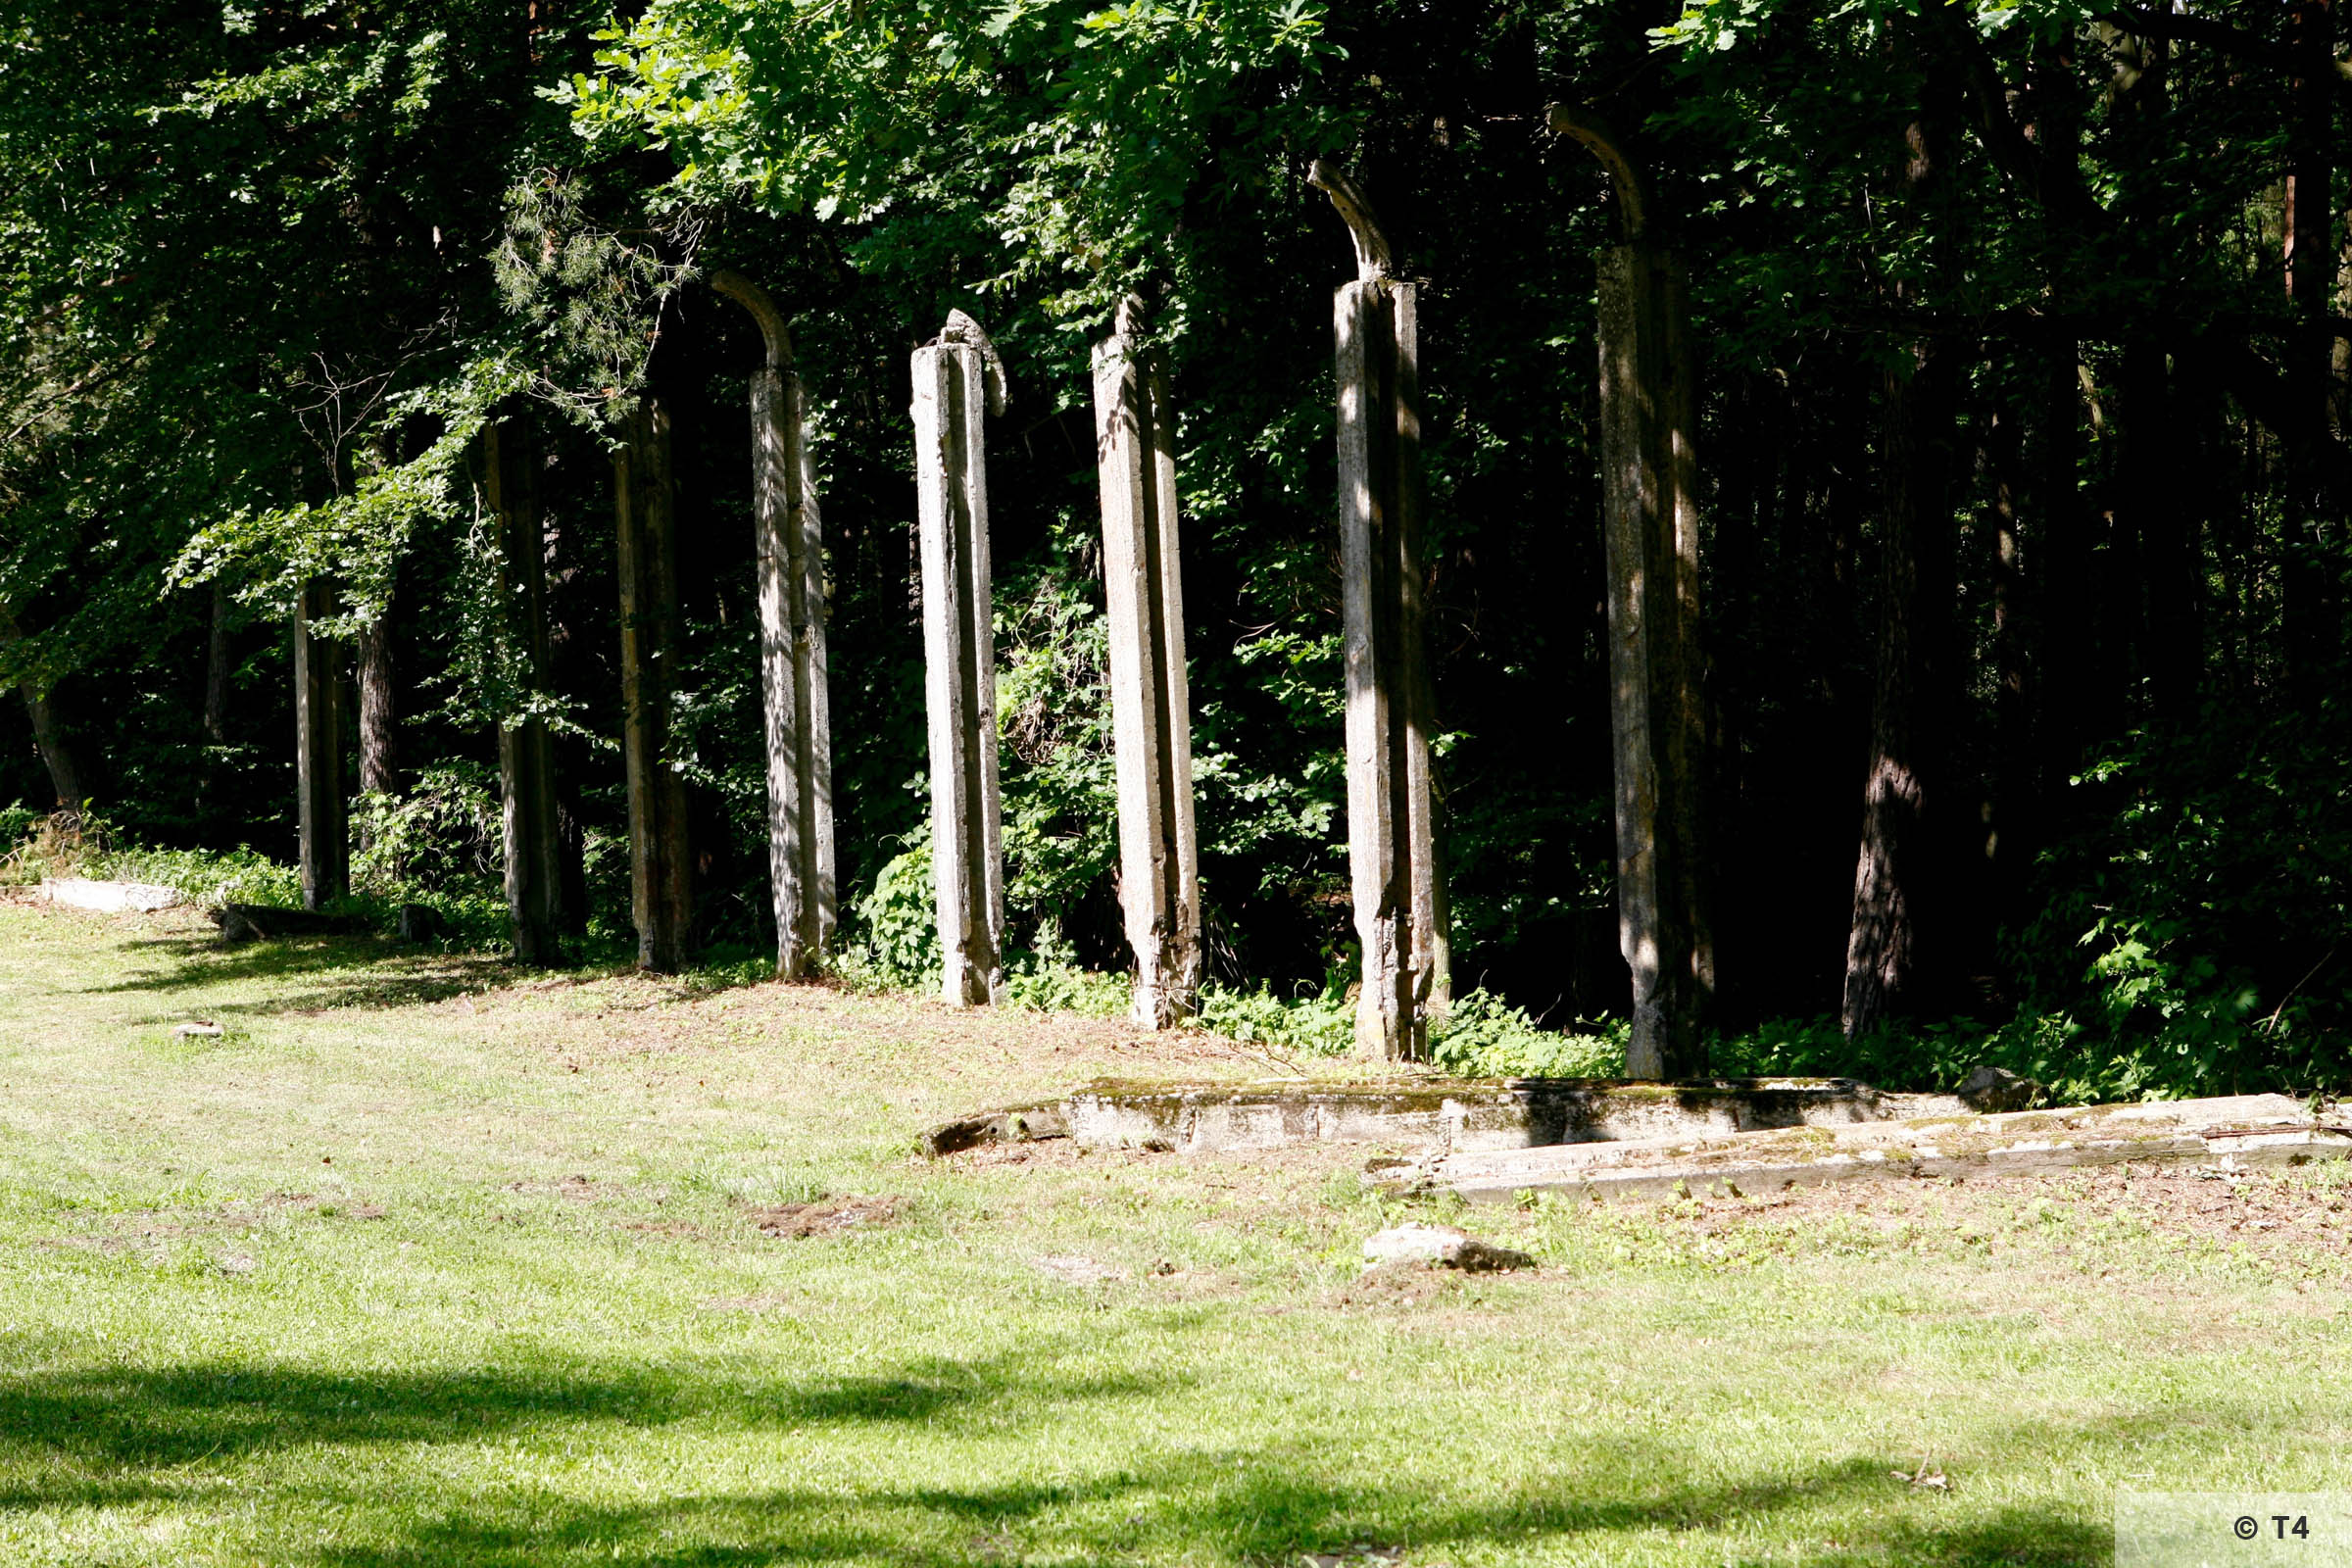 Former sub camp fence posts. 2006 T4 5493